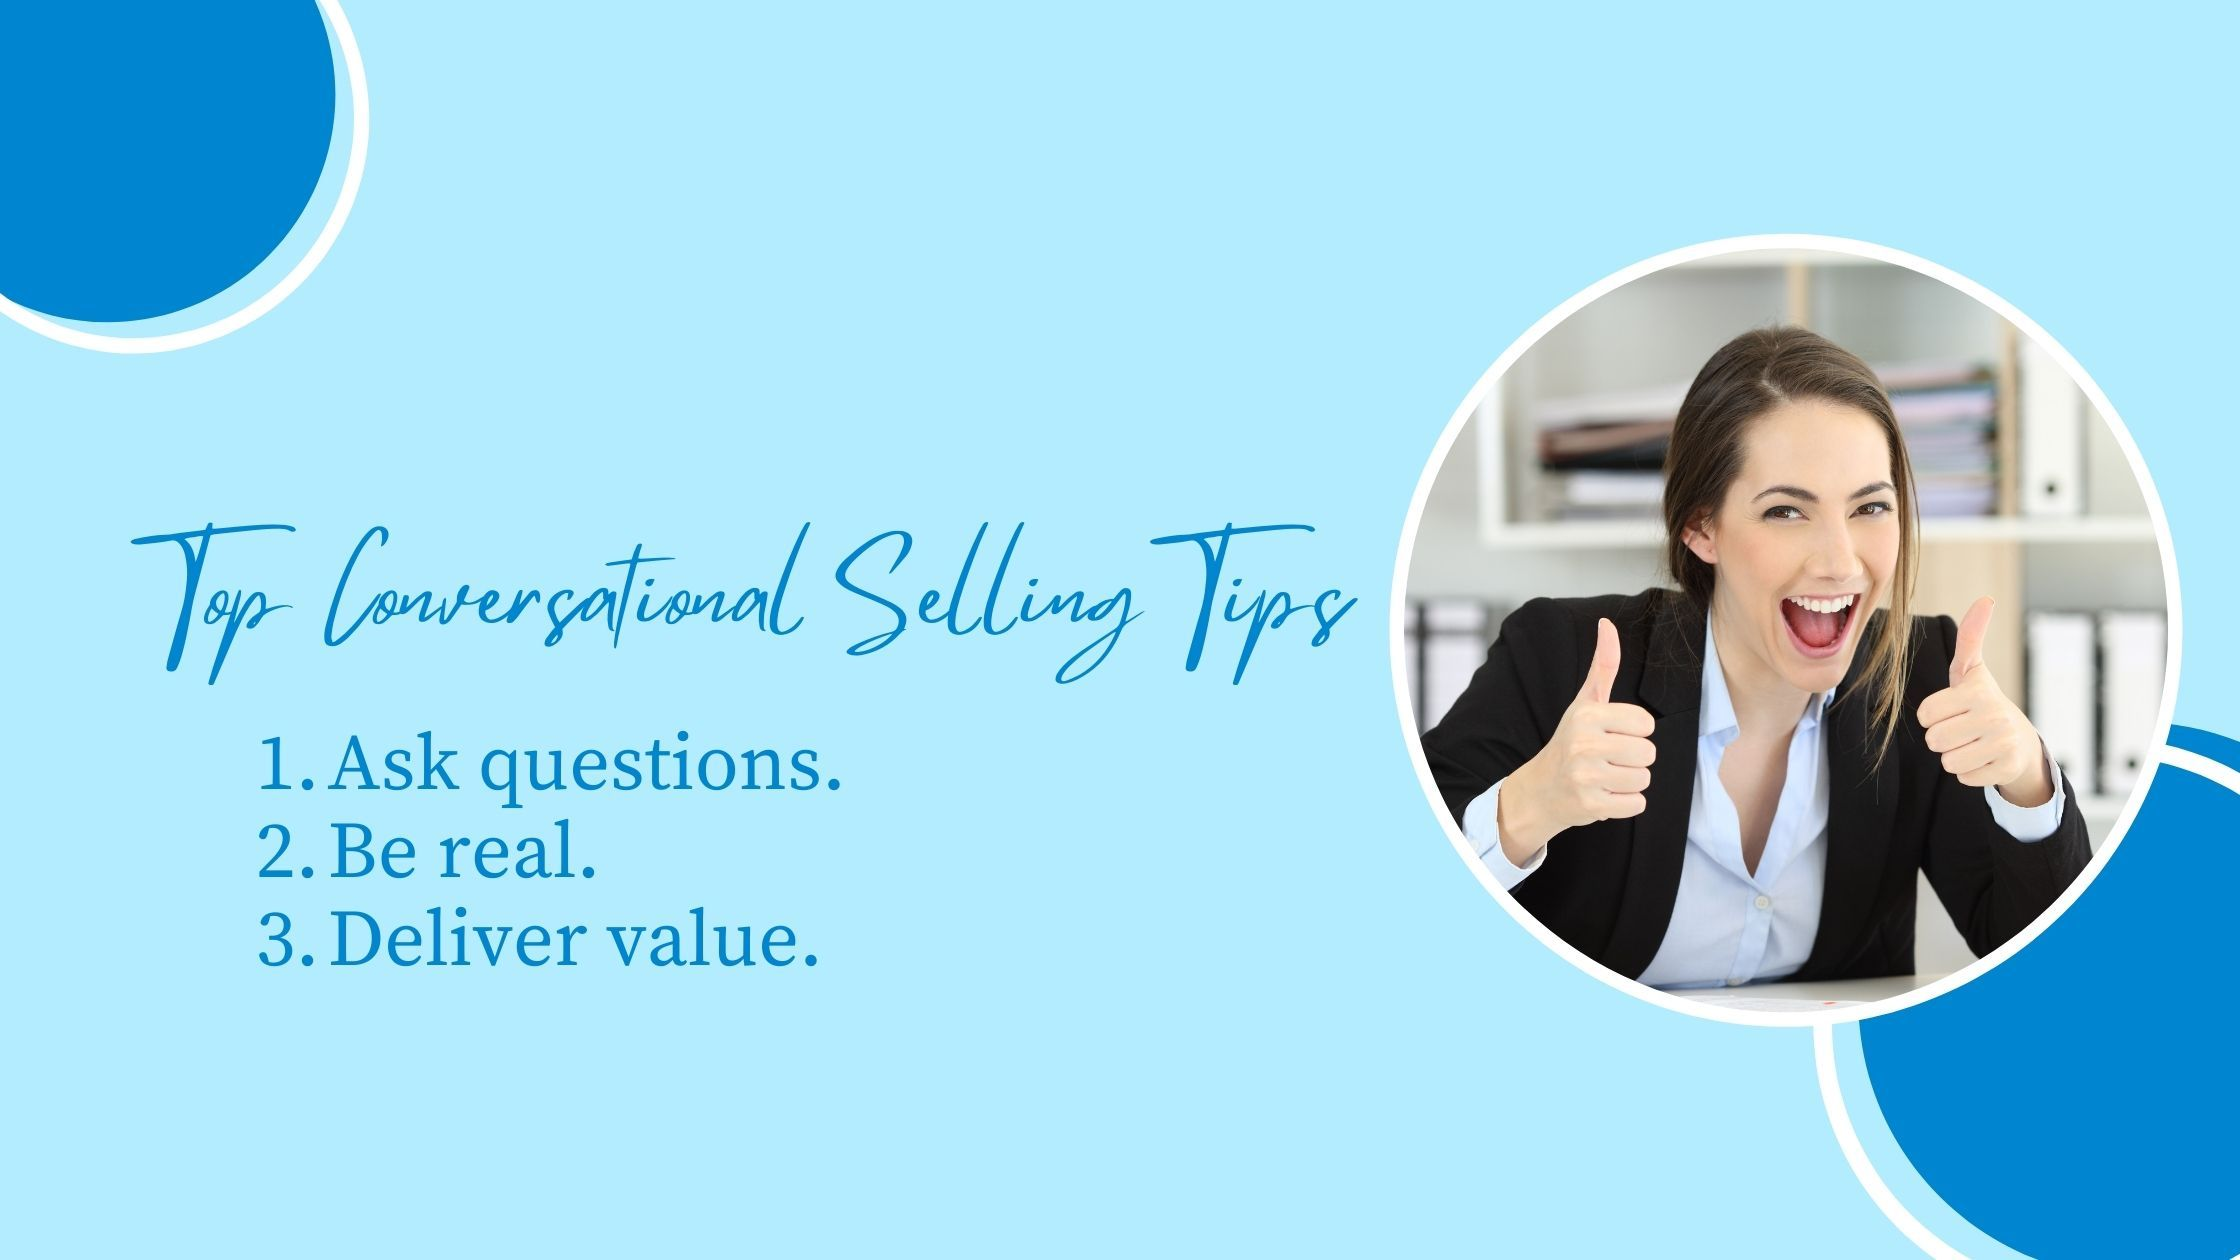 Top Conversational Selling Tips